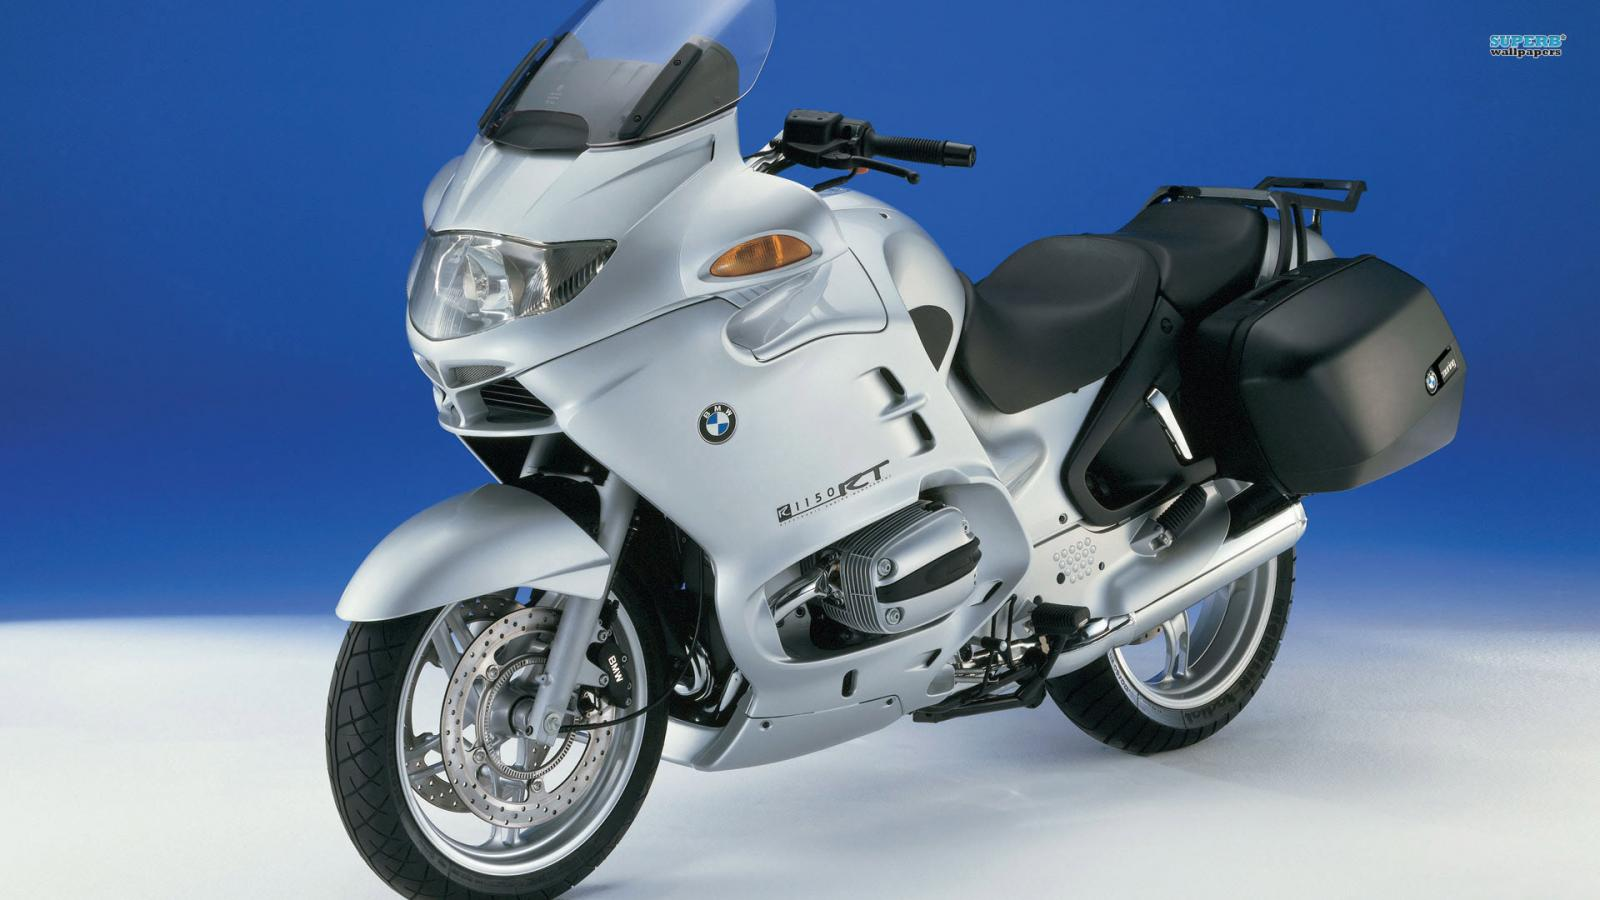 BMW R1150RT 2004 images #7790